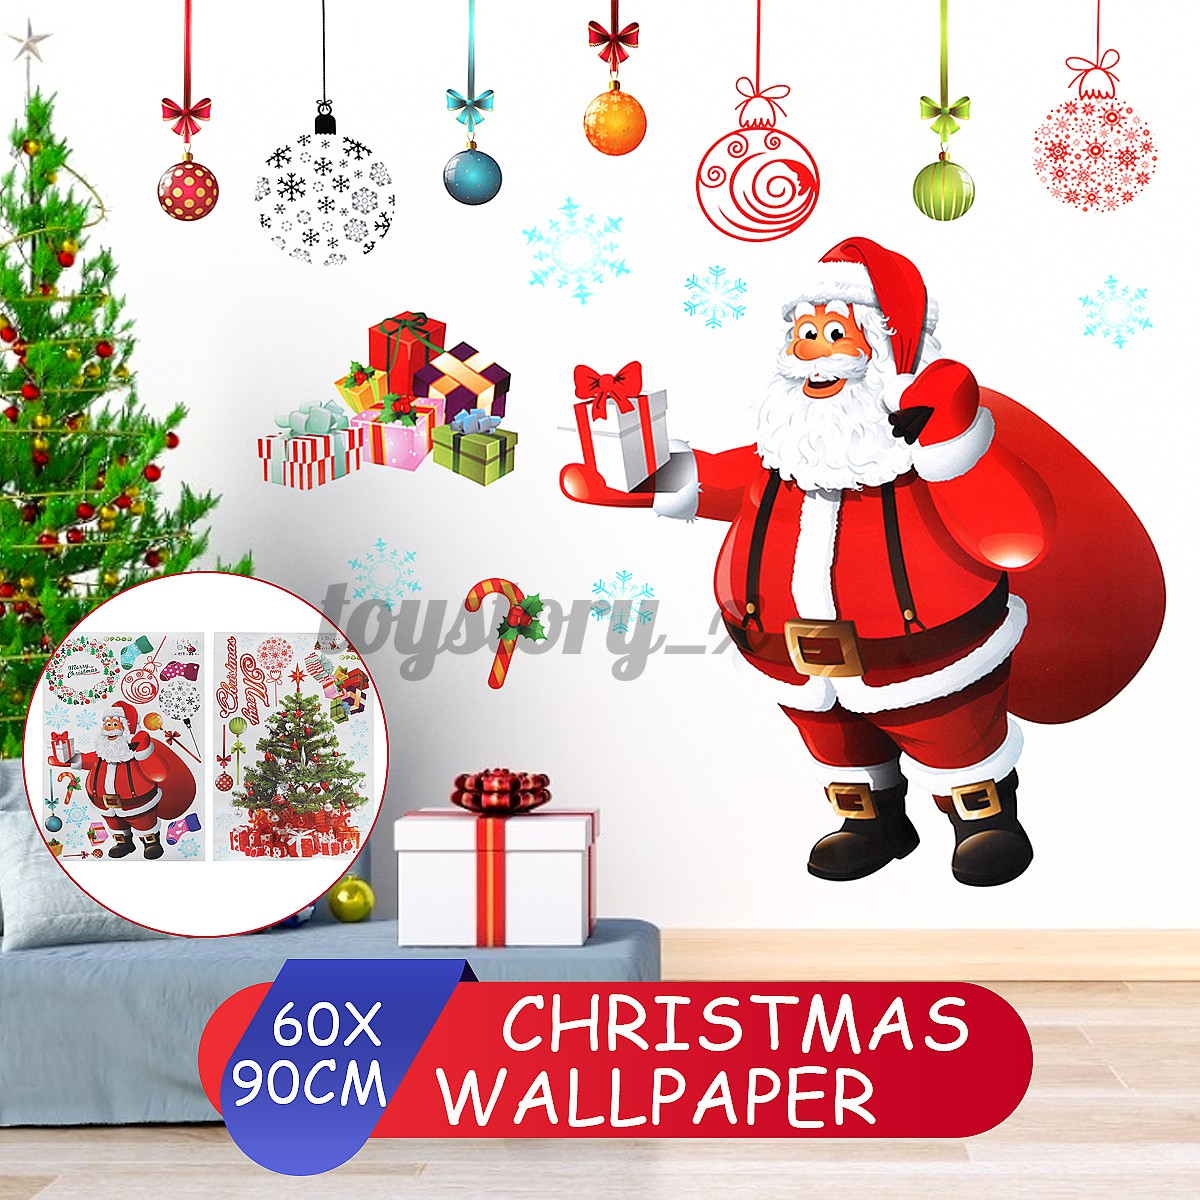 2pcs 90cmx60cm 10cmx5cm Christmas Santa Claus Wall Wallpaper Sticker Decor Kids Arts Decal Bedroom Gifts Colorful Christmas Tree Sticker Window Home Decoration Shopee Singapore